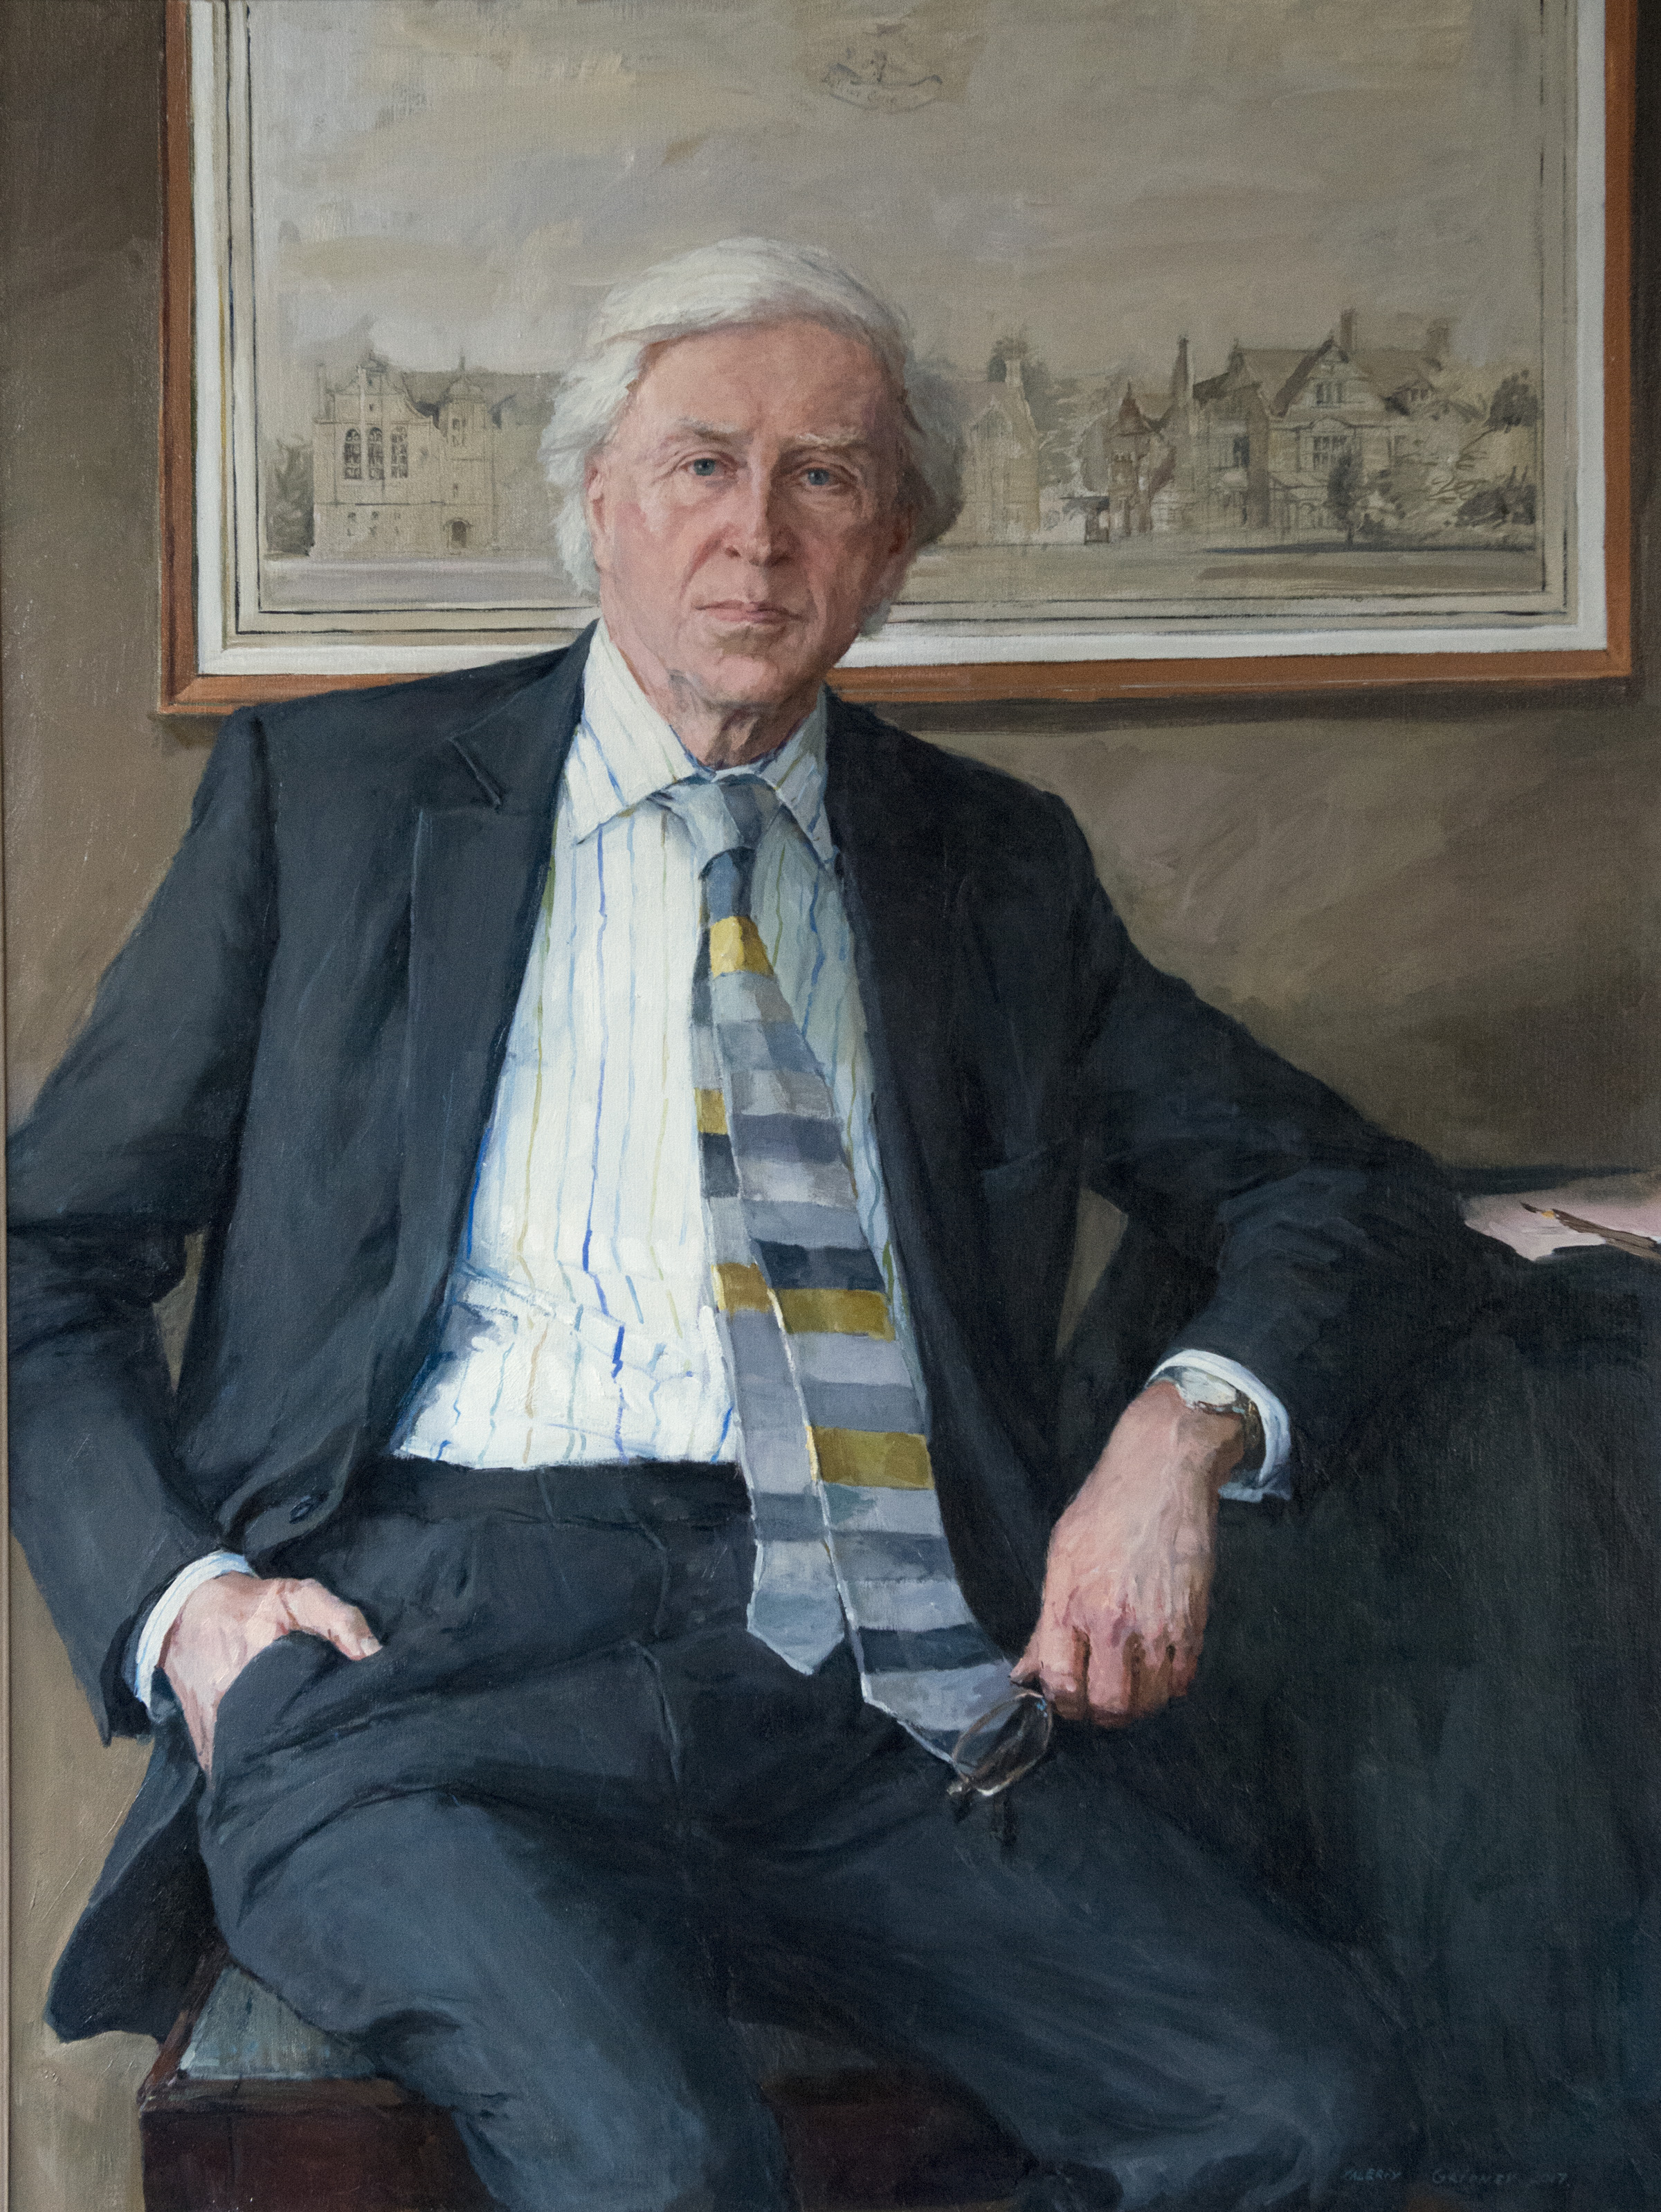 Portrait of Professor Sir Drummond Bone (Master of Balliol) by Valeriy Gridnev (photo: Rob Judges)